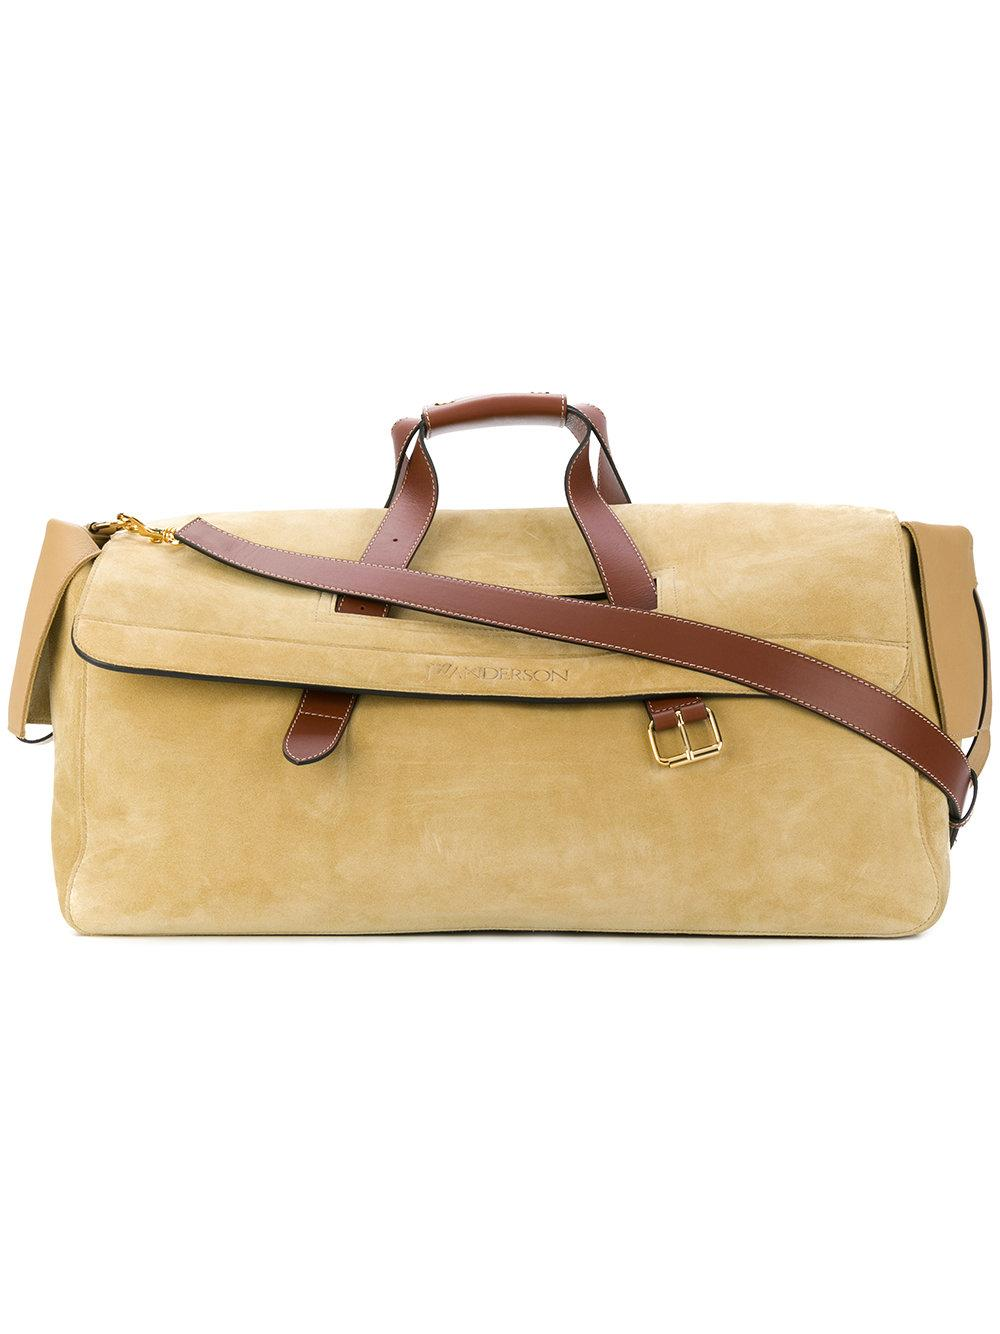 Jw Anderson Large Tool Bag In Neutrals